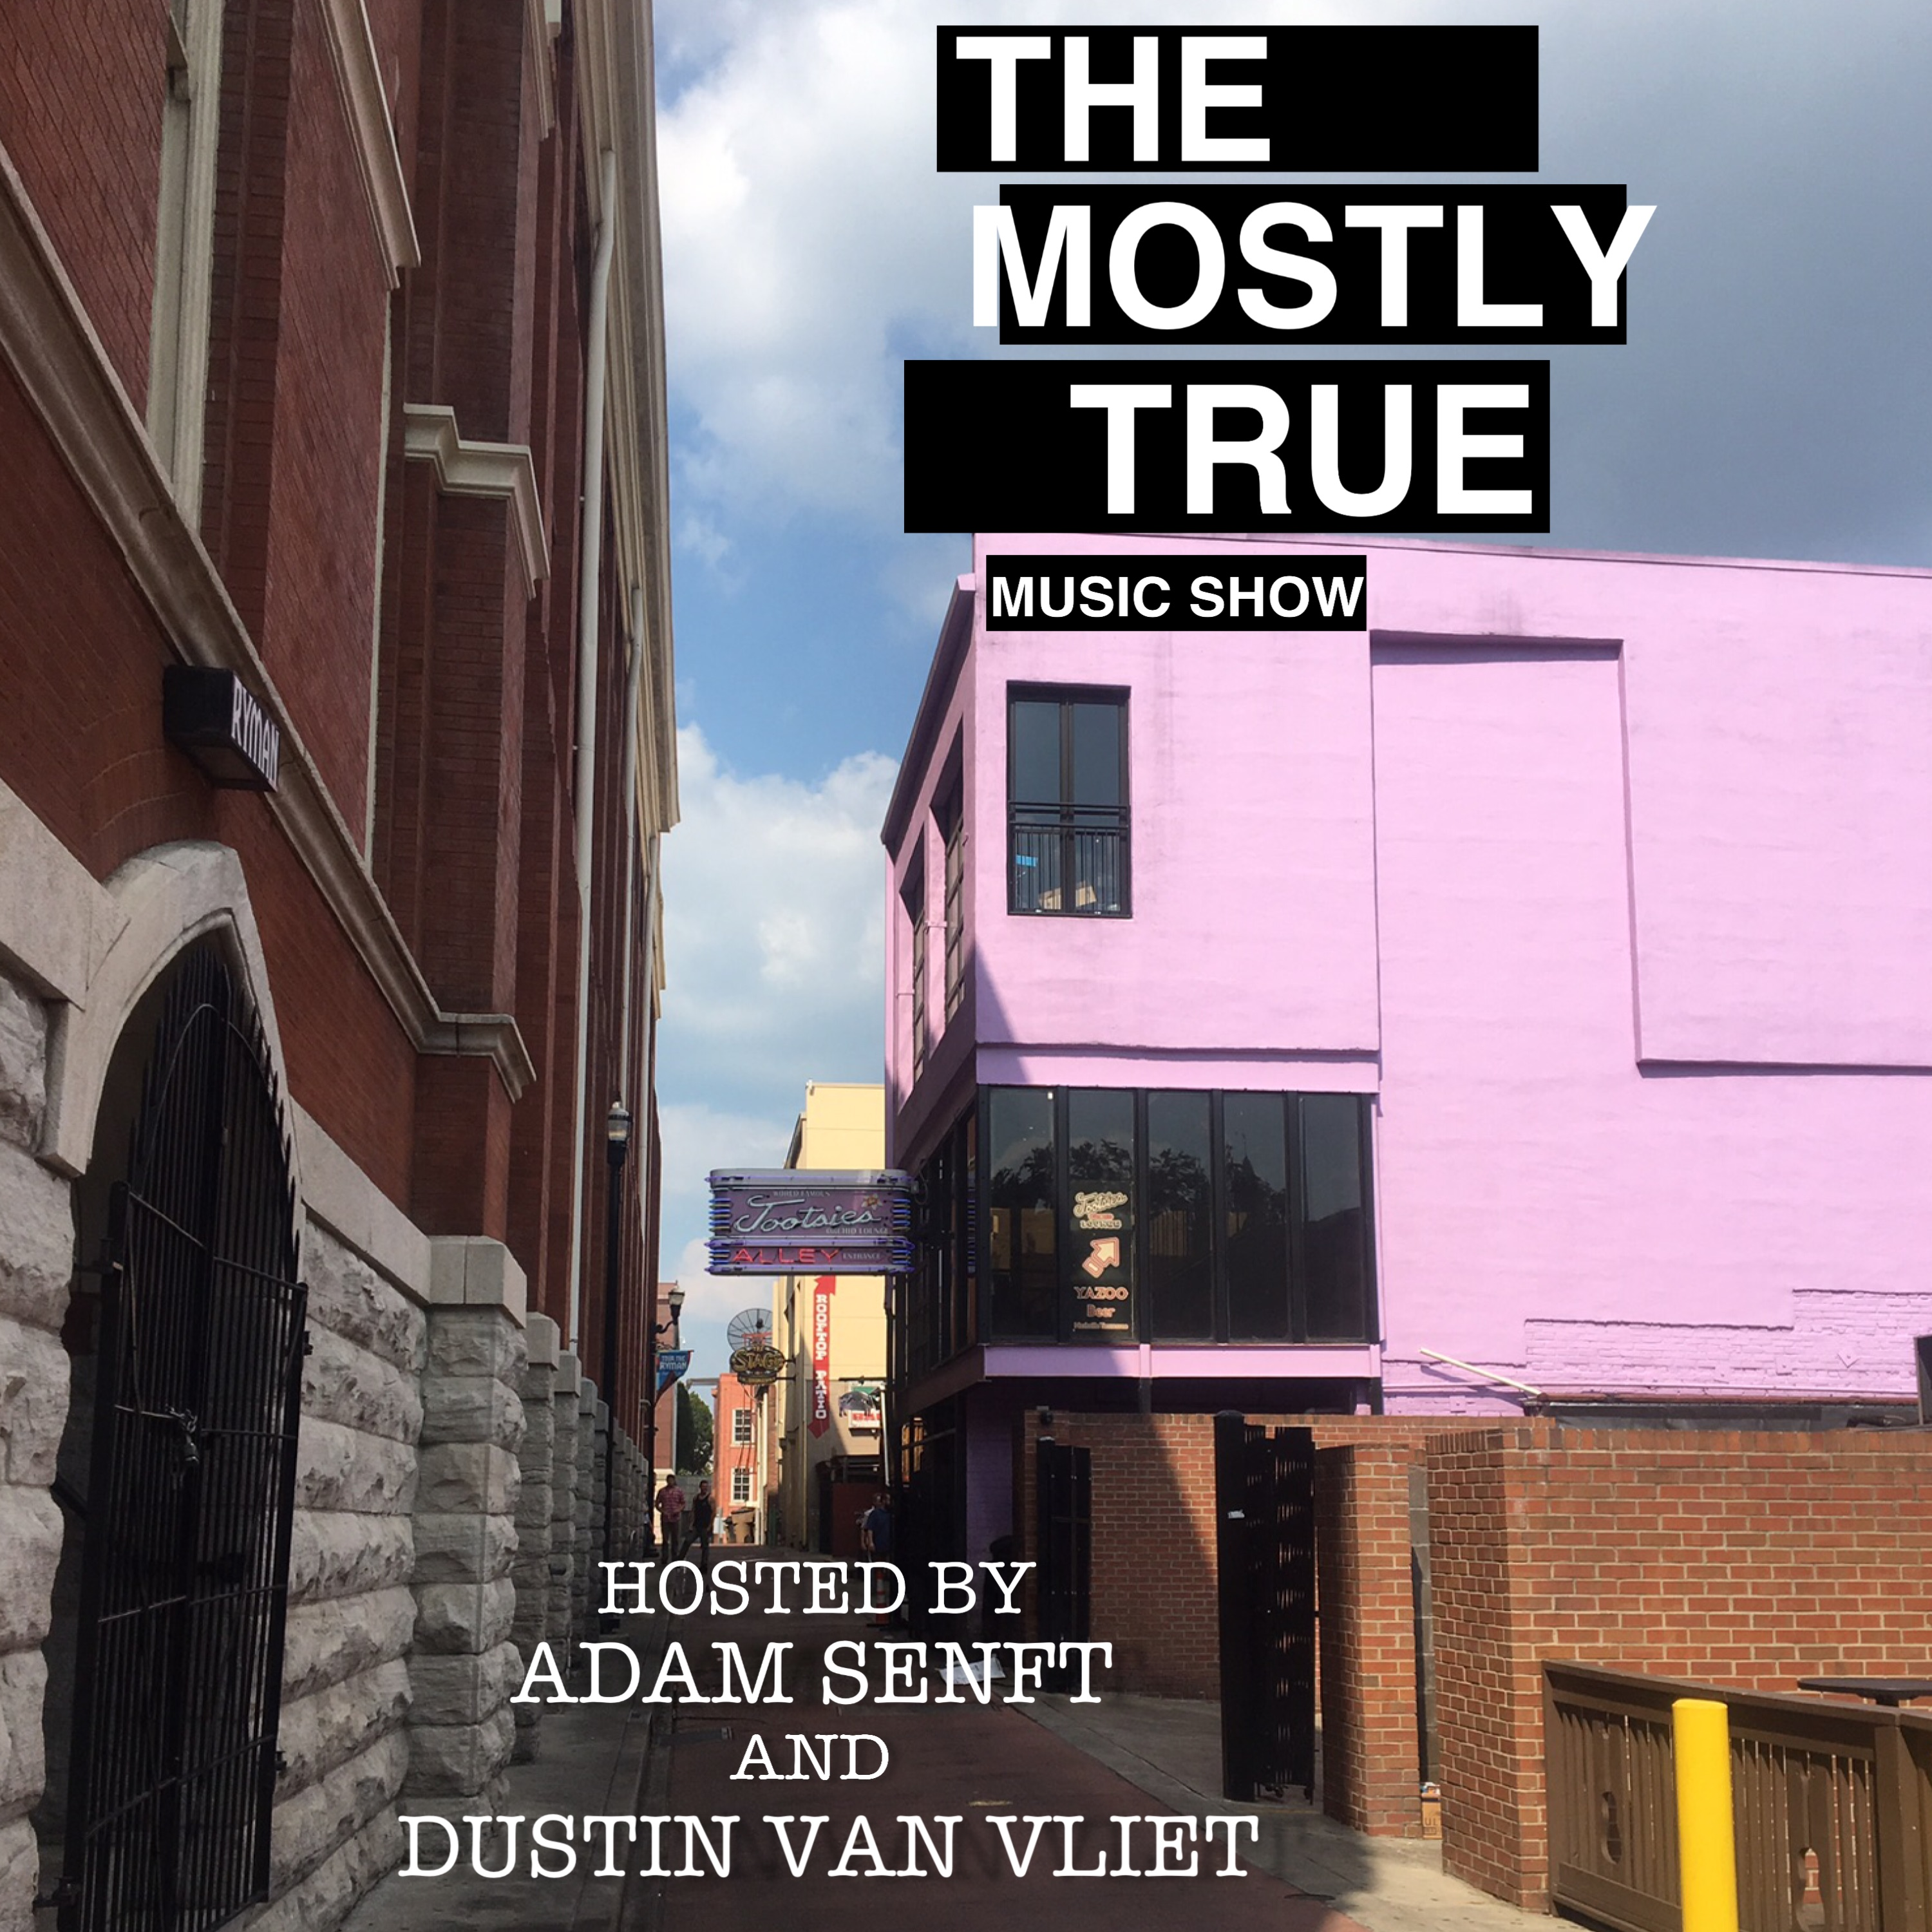 The Mostly True Music Show show image